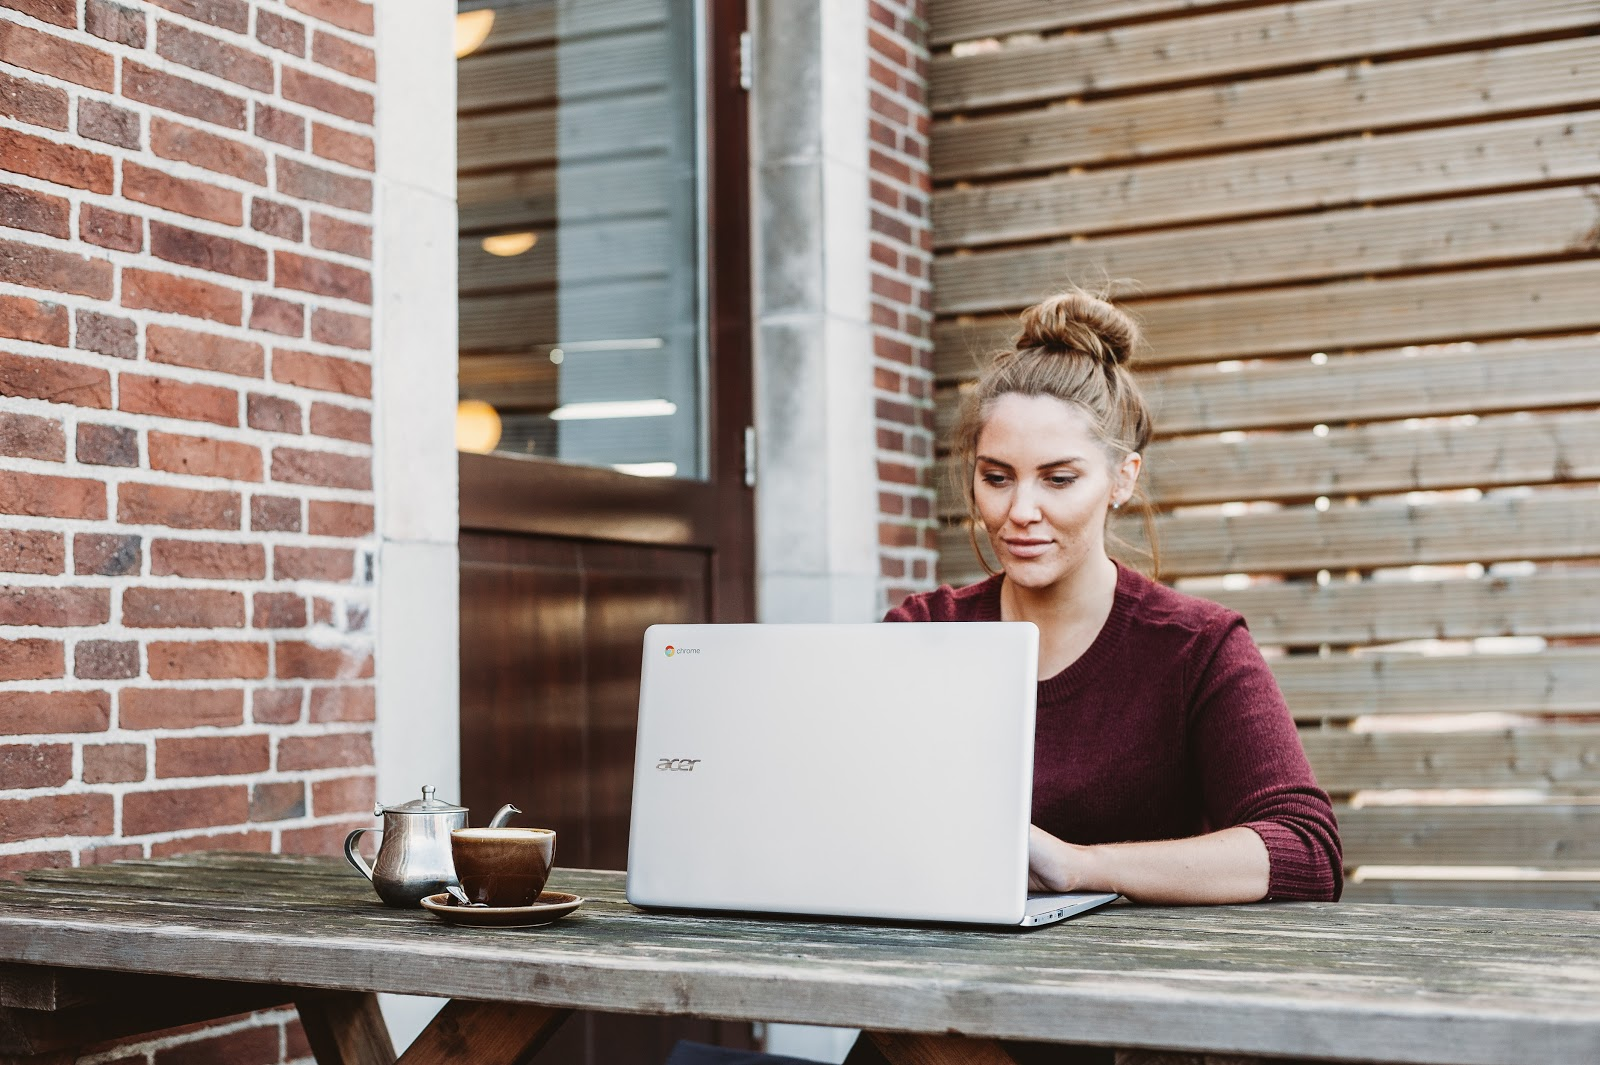 Woman working as a Clickworker on laptop